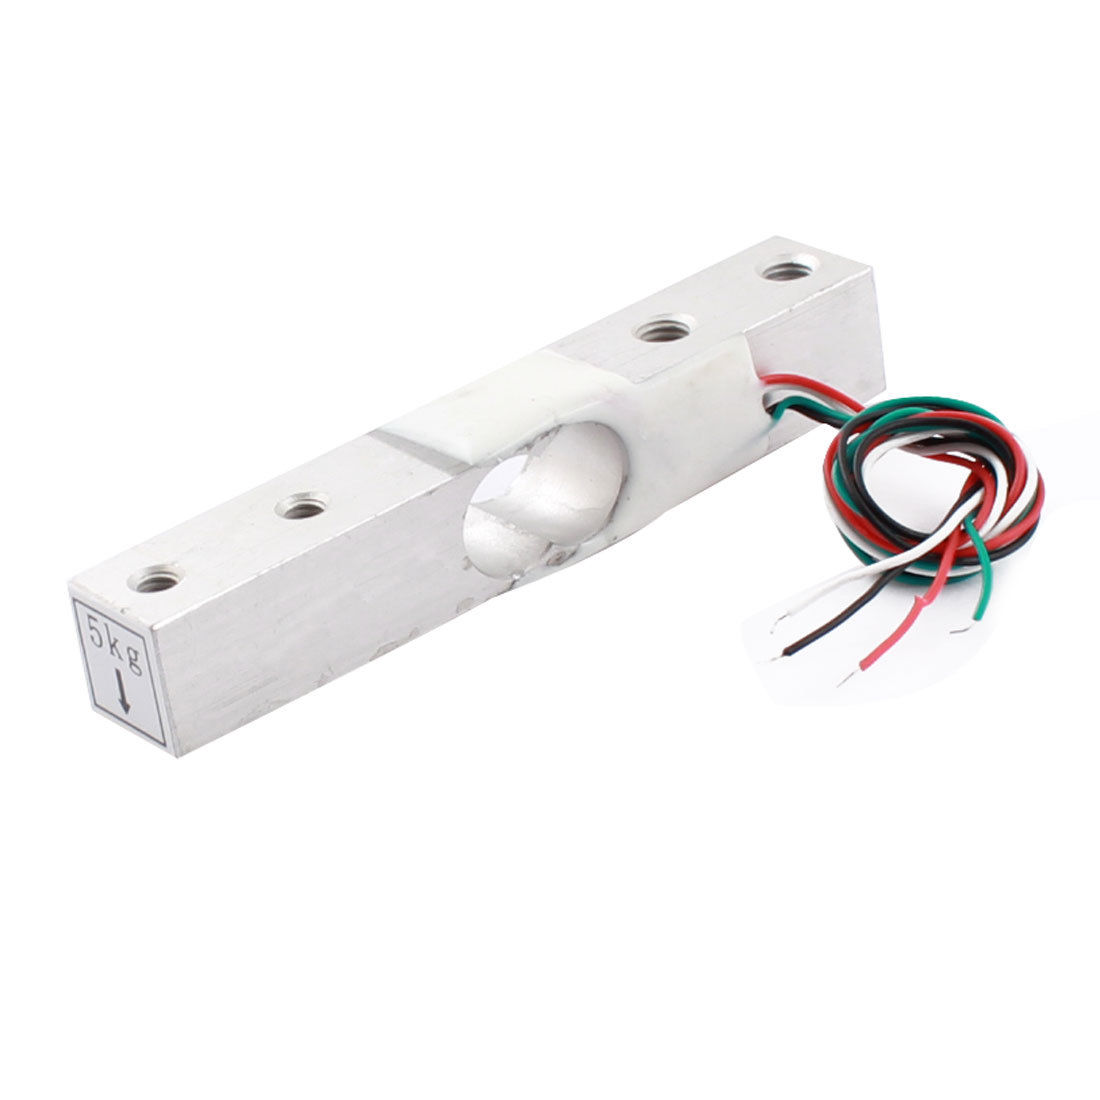 Load Cell (Weight Sensor)